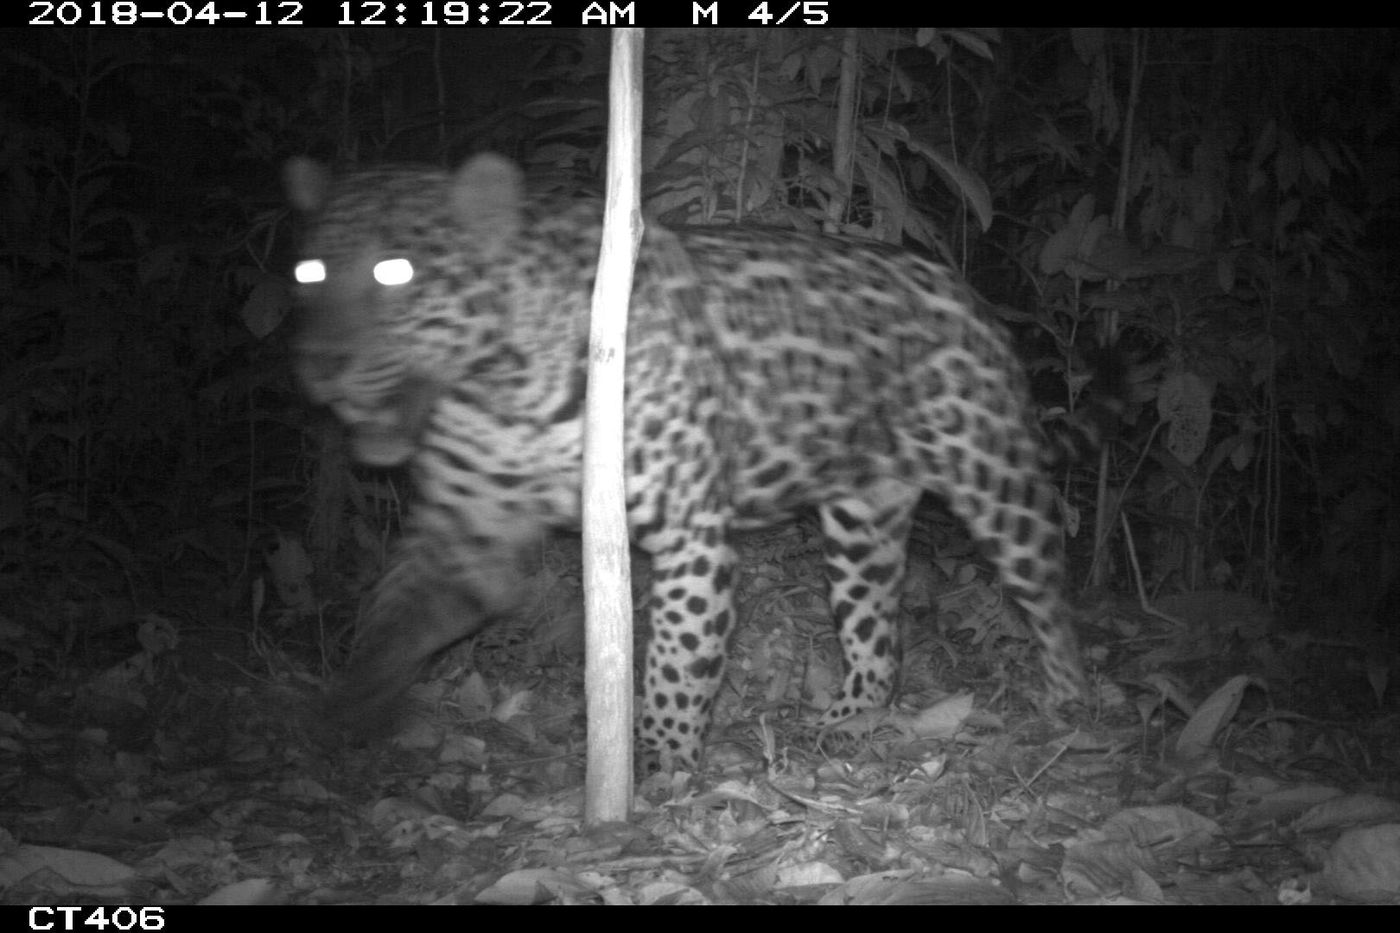 Black-and-white nighttime photo of a jaguar walking in the forest. Its eyes are illuminated by the camera flash.